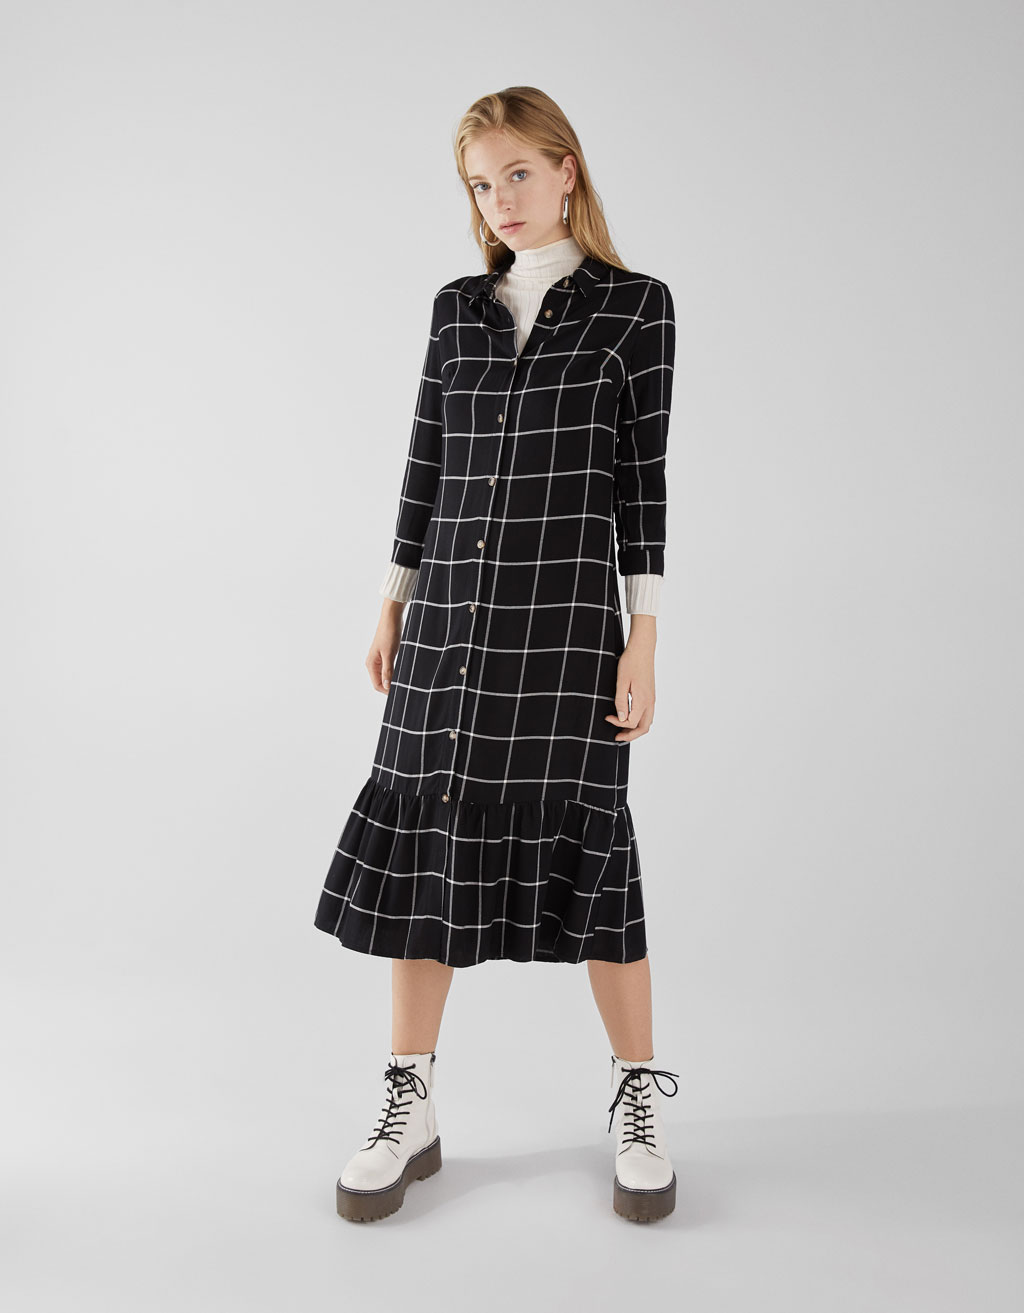 Jurk type shirtdress met volant